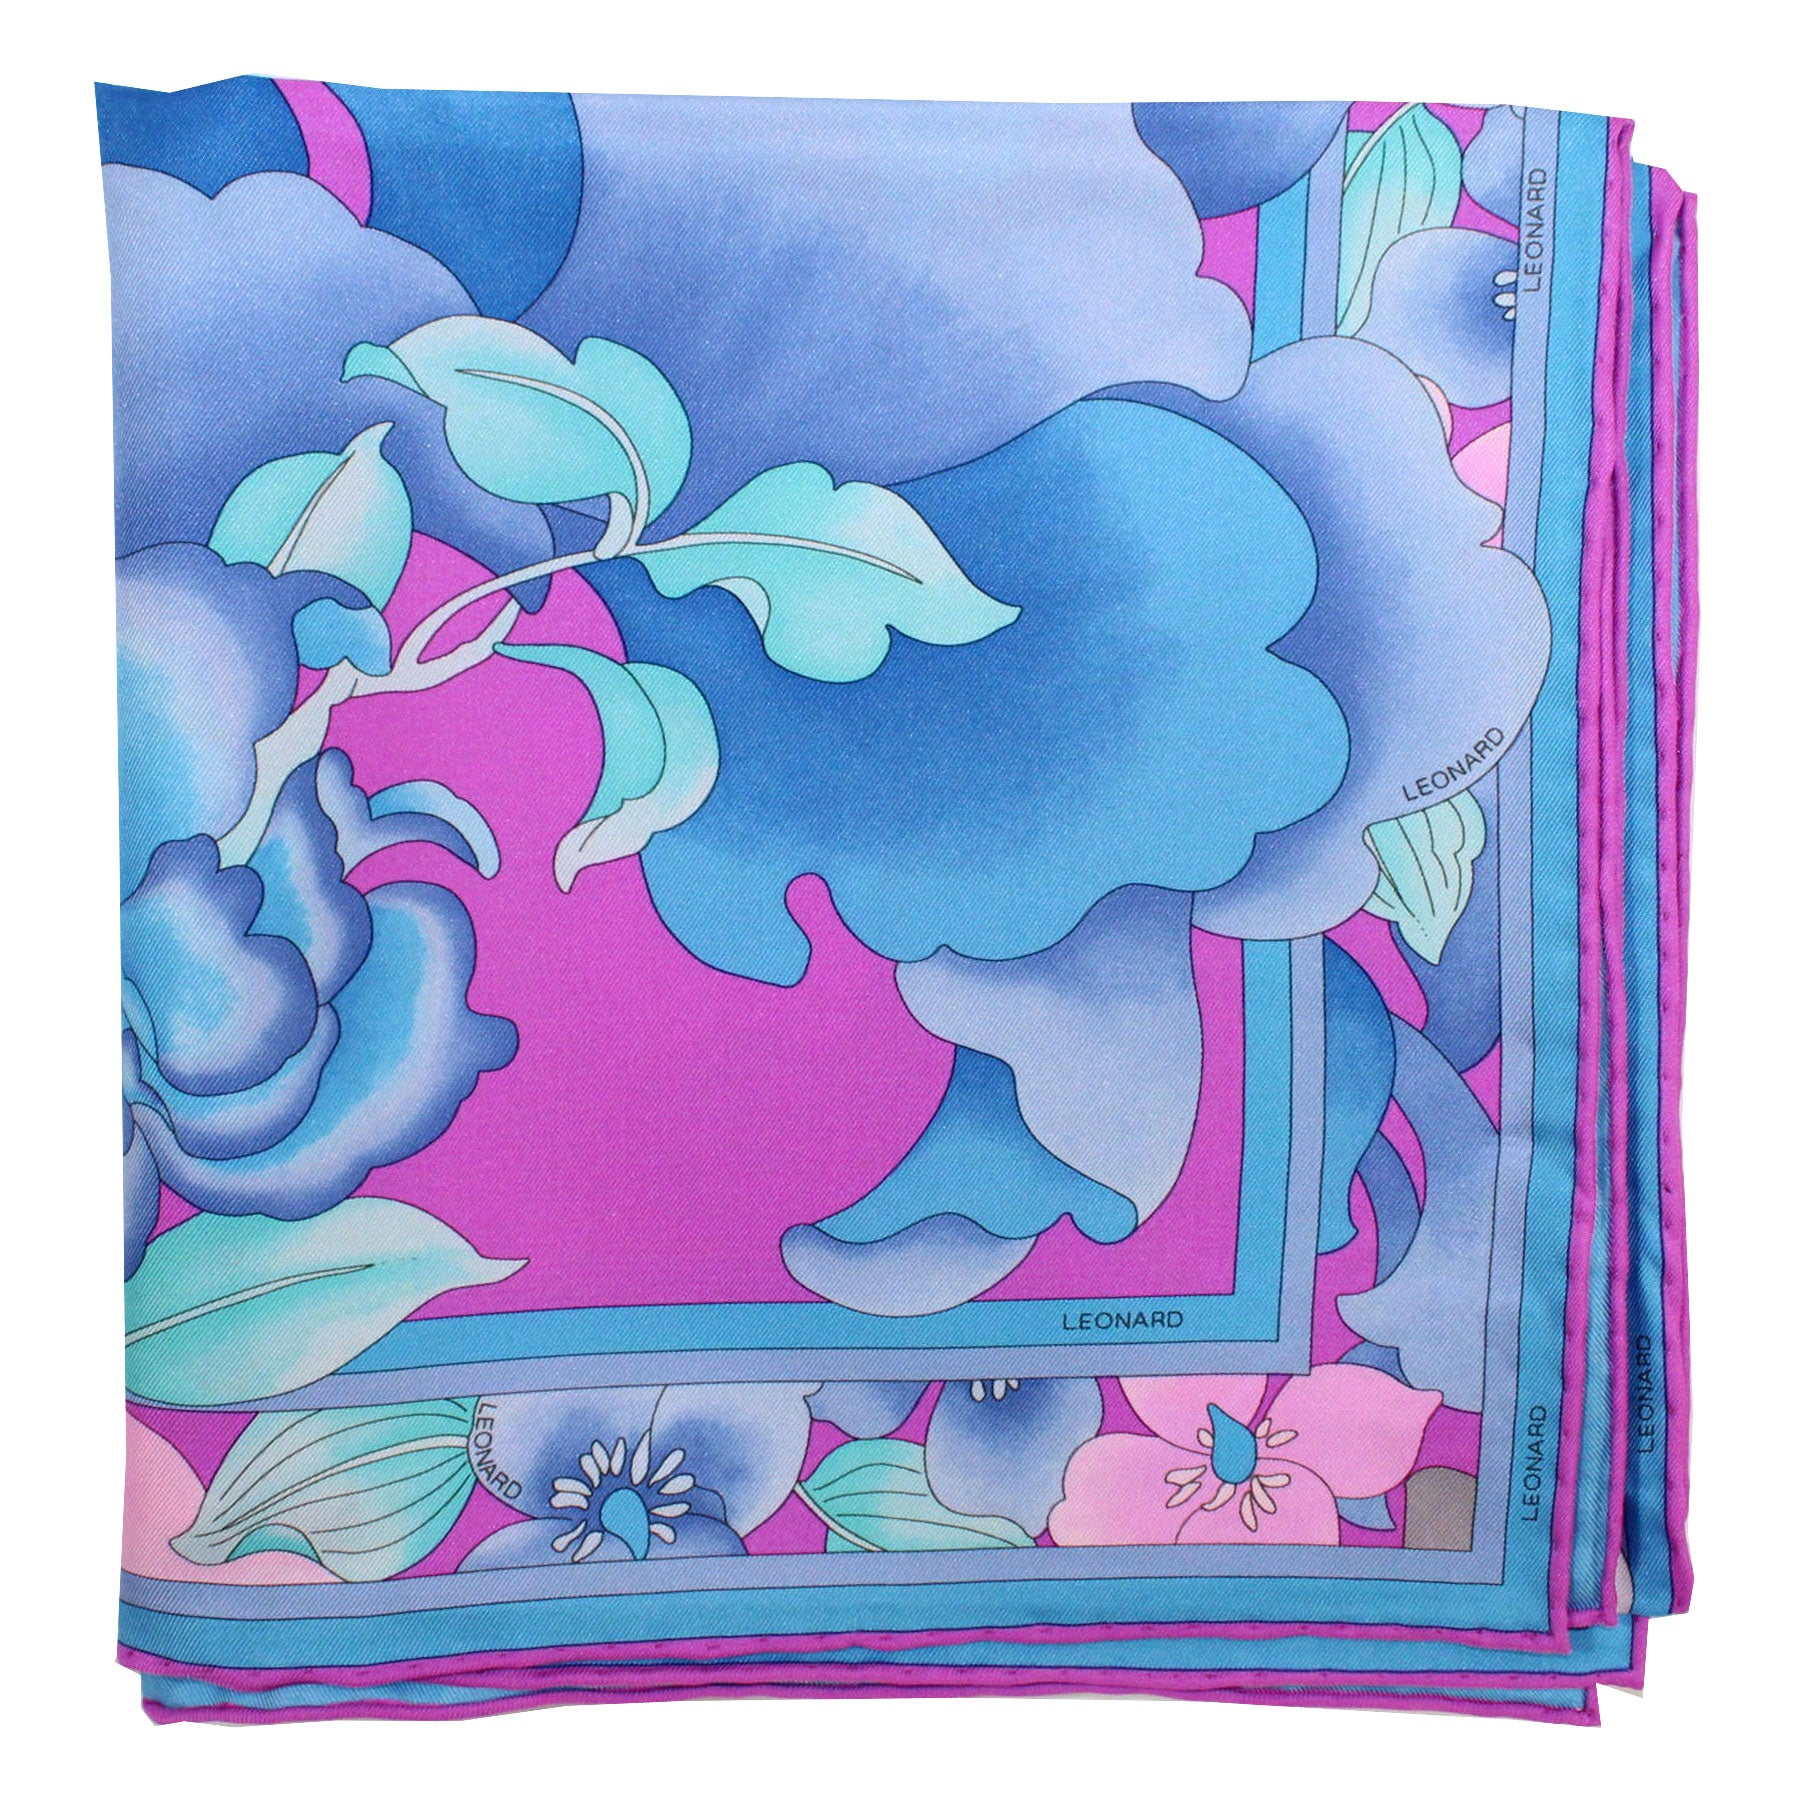 Leonard Paris Scarf Fuchsia Turquoise Blue Pink Floral - Large Square Twill Silk Foulard